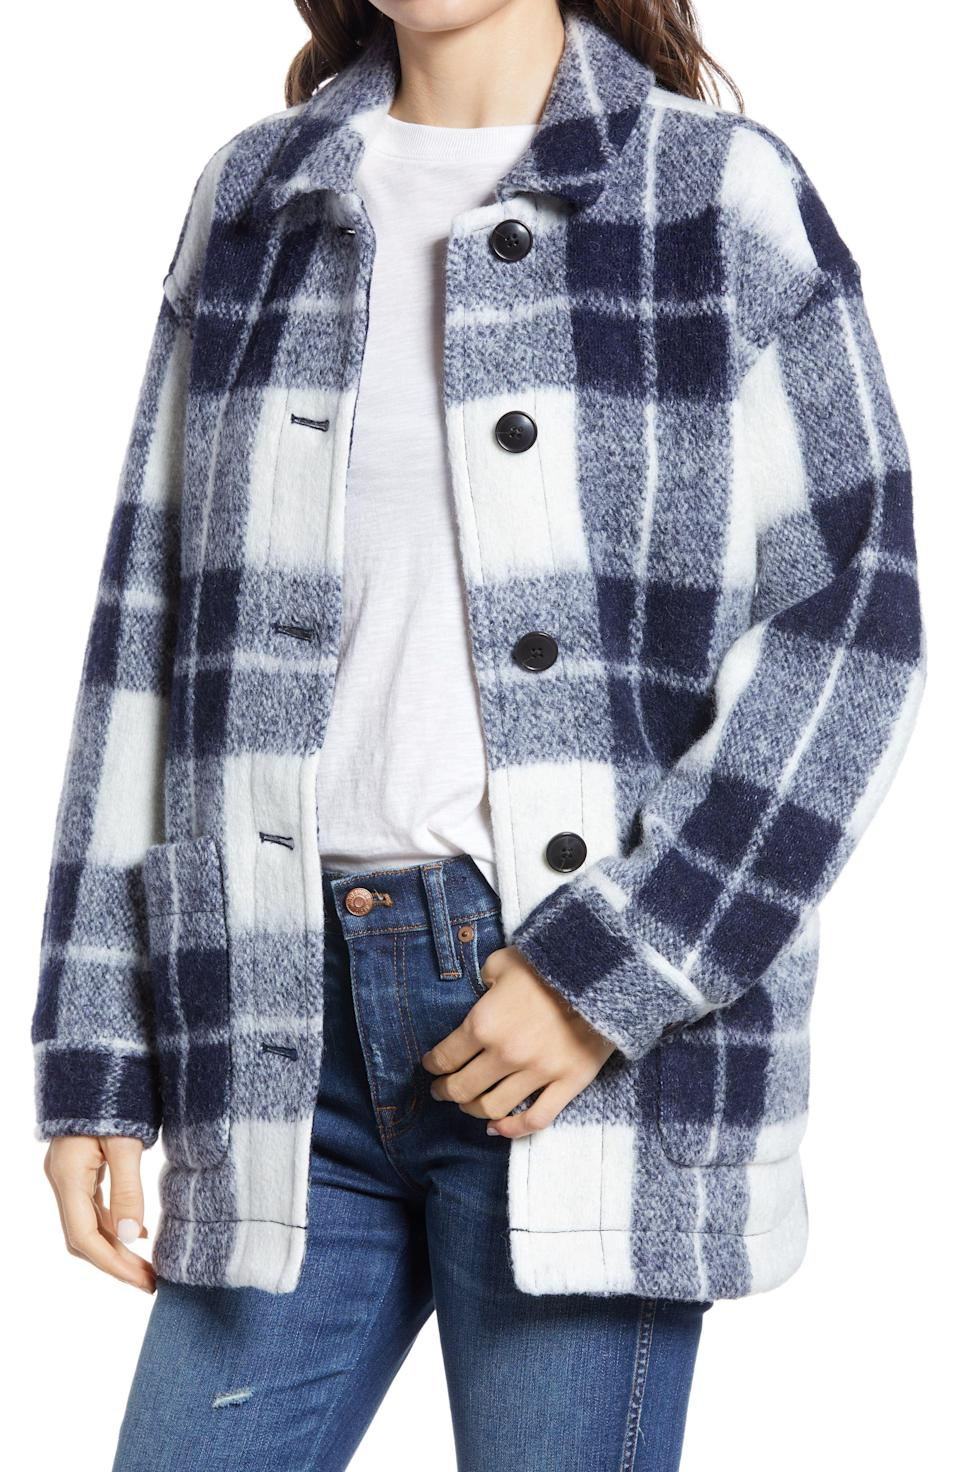 "<p><strong>MADEWELL</strong></p><p>nordstrom.com</p><p><a href=""https://go.redirectingat.com?id=74968X1596630&url=https%3A%2F%2Fwww.nordstrom.com%2Fs%2Fmadewell-womens-walton-colleton-plaid-shirt-jacket%2F5739811&sref=https%3A%2F%2Fwww.bestproducts.com%2Fpromo-coupon-codes%2Fg34775483%2Fnordstrom-black-friday-cyber-monday-deals-2020%2F"" rel=""nofollow noopener"" target=""_blank"" data-ylk=""slk:Shop Now"" class=""link rapid-noclick-resp"">Shop Now</a></p><p><strong>Price: <del>$228</del> $159.60 (30% off) </strong></p><p>Imagine yourself in a cozy cabin in the dead of winter. Now picture yourself in this shirt jacket in said cabin. Sold yet? </p>"